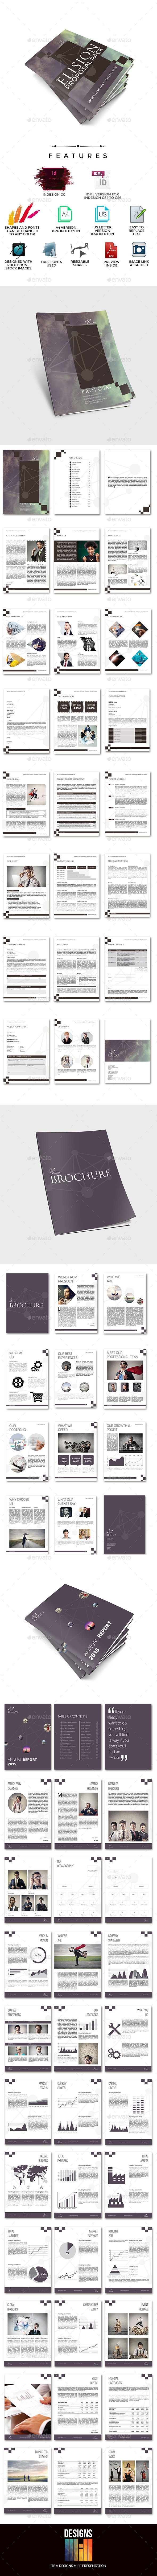 Elision Indesign Multi Business Proposals Bundle  - Proposals & Invoices Stationery